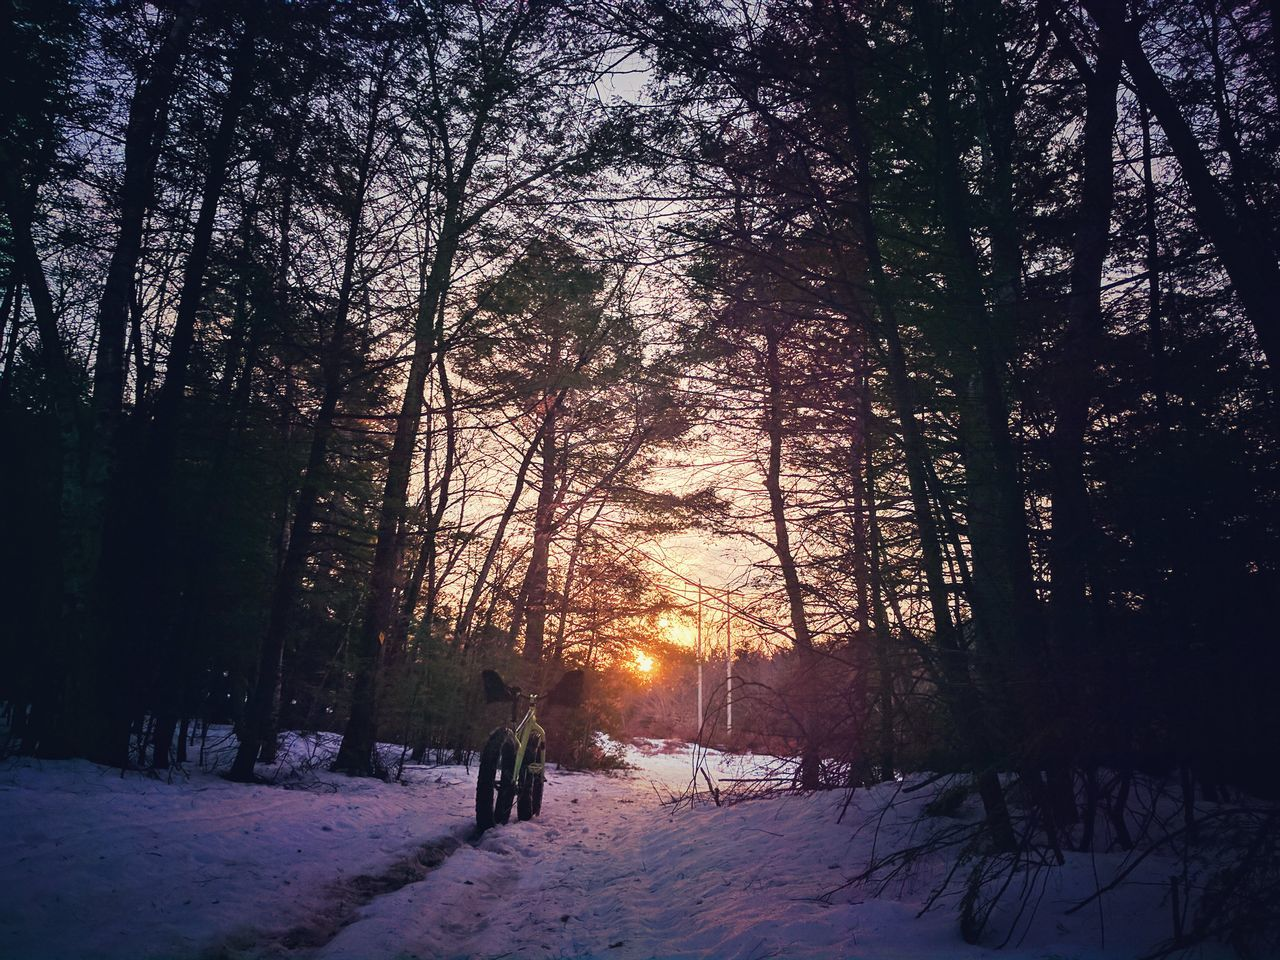 tree, winter, snow, cold temperature, nature, weather, beauty in nature, sun, tranquility, tranquil scene, forest, scenics, sunset, growth, outdoors, sunlight, landscape, real people, sky, full length, day, one person, people